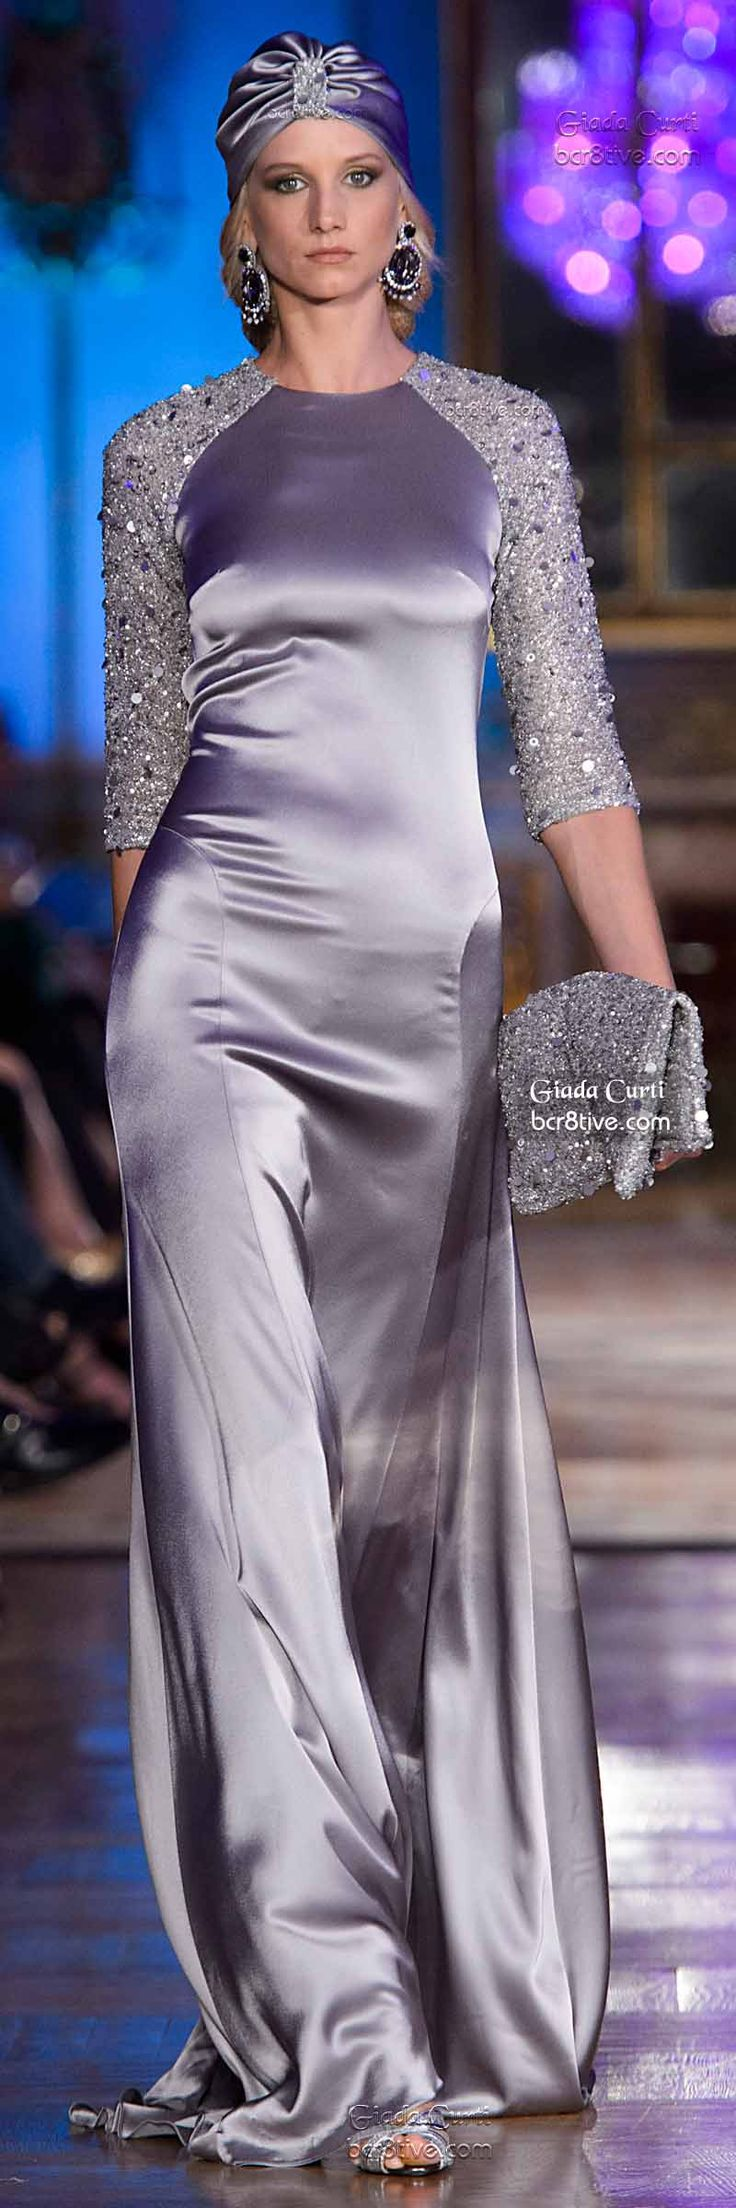 Giada Curti Shukran Collection